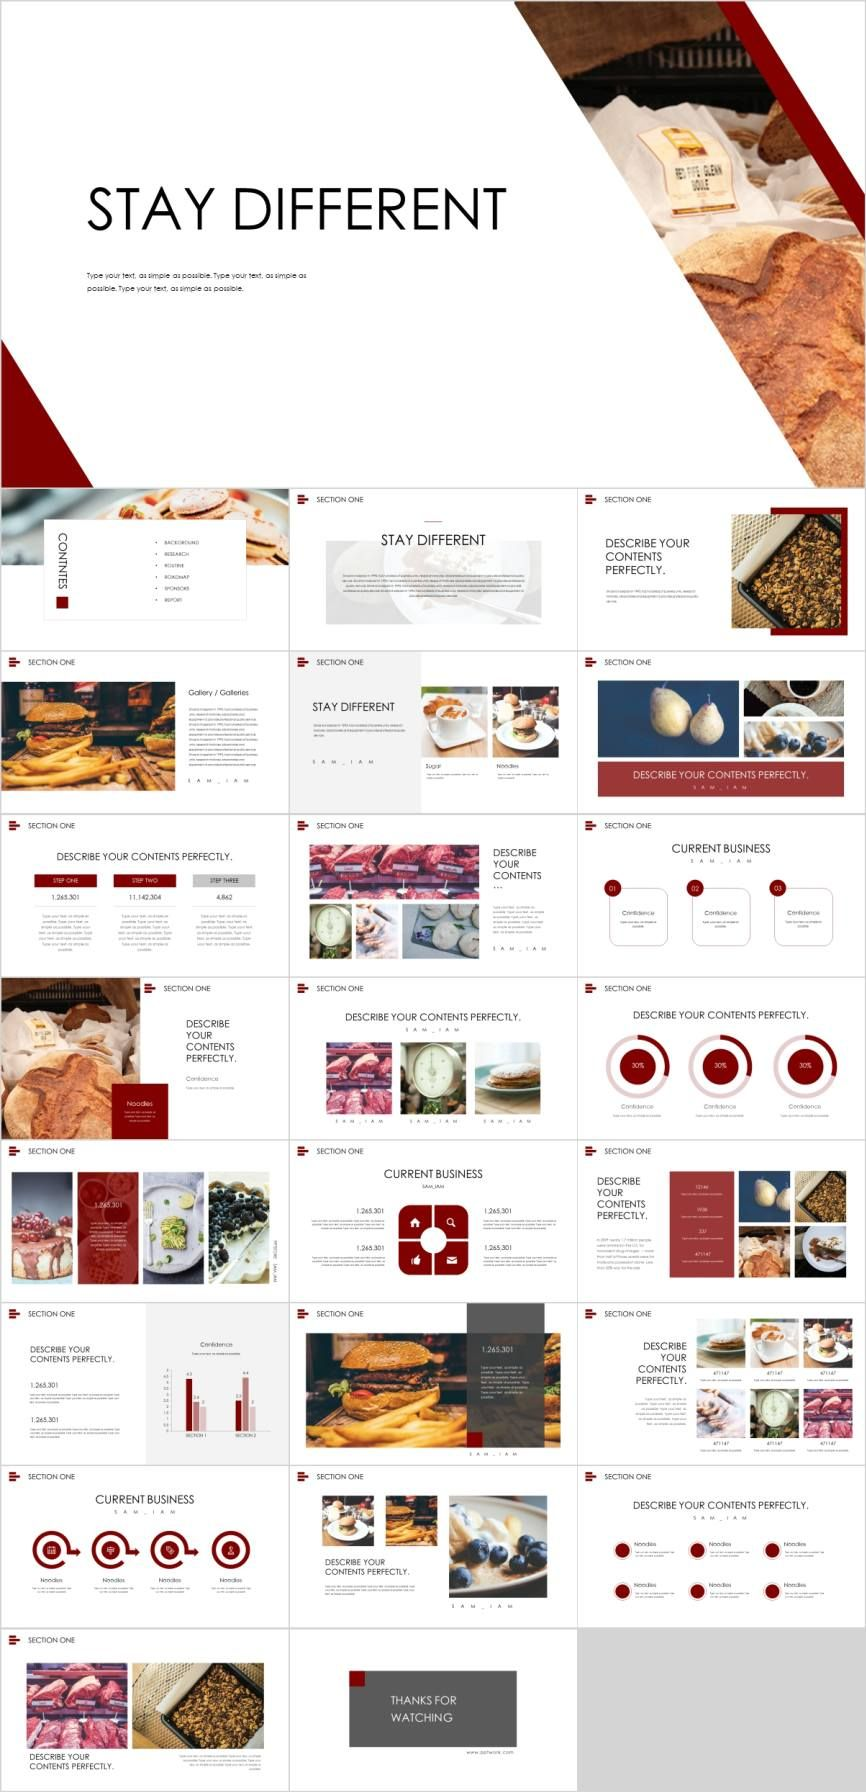 Creative food industry analysis PowerPoint template